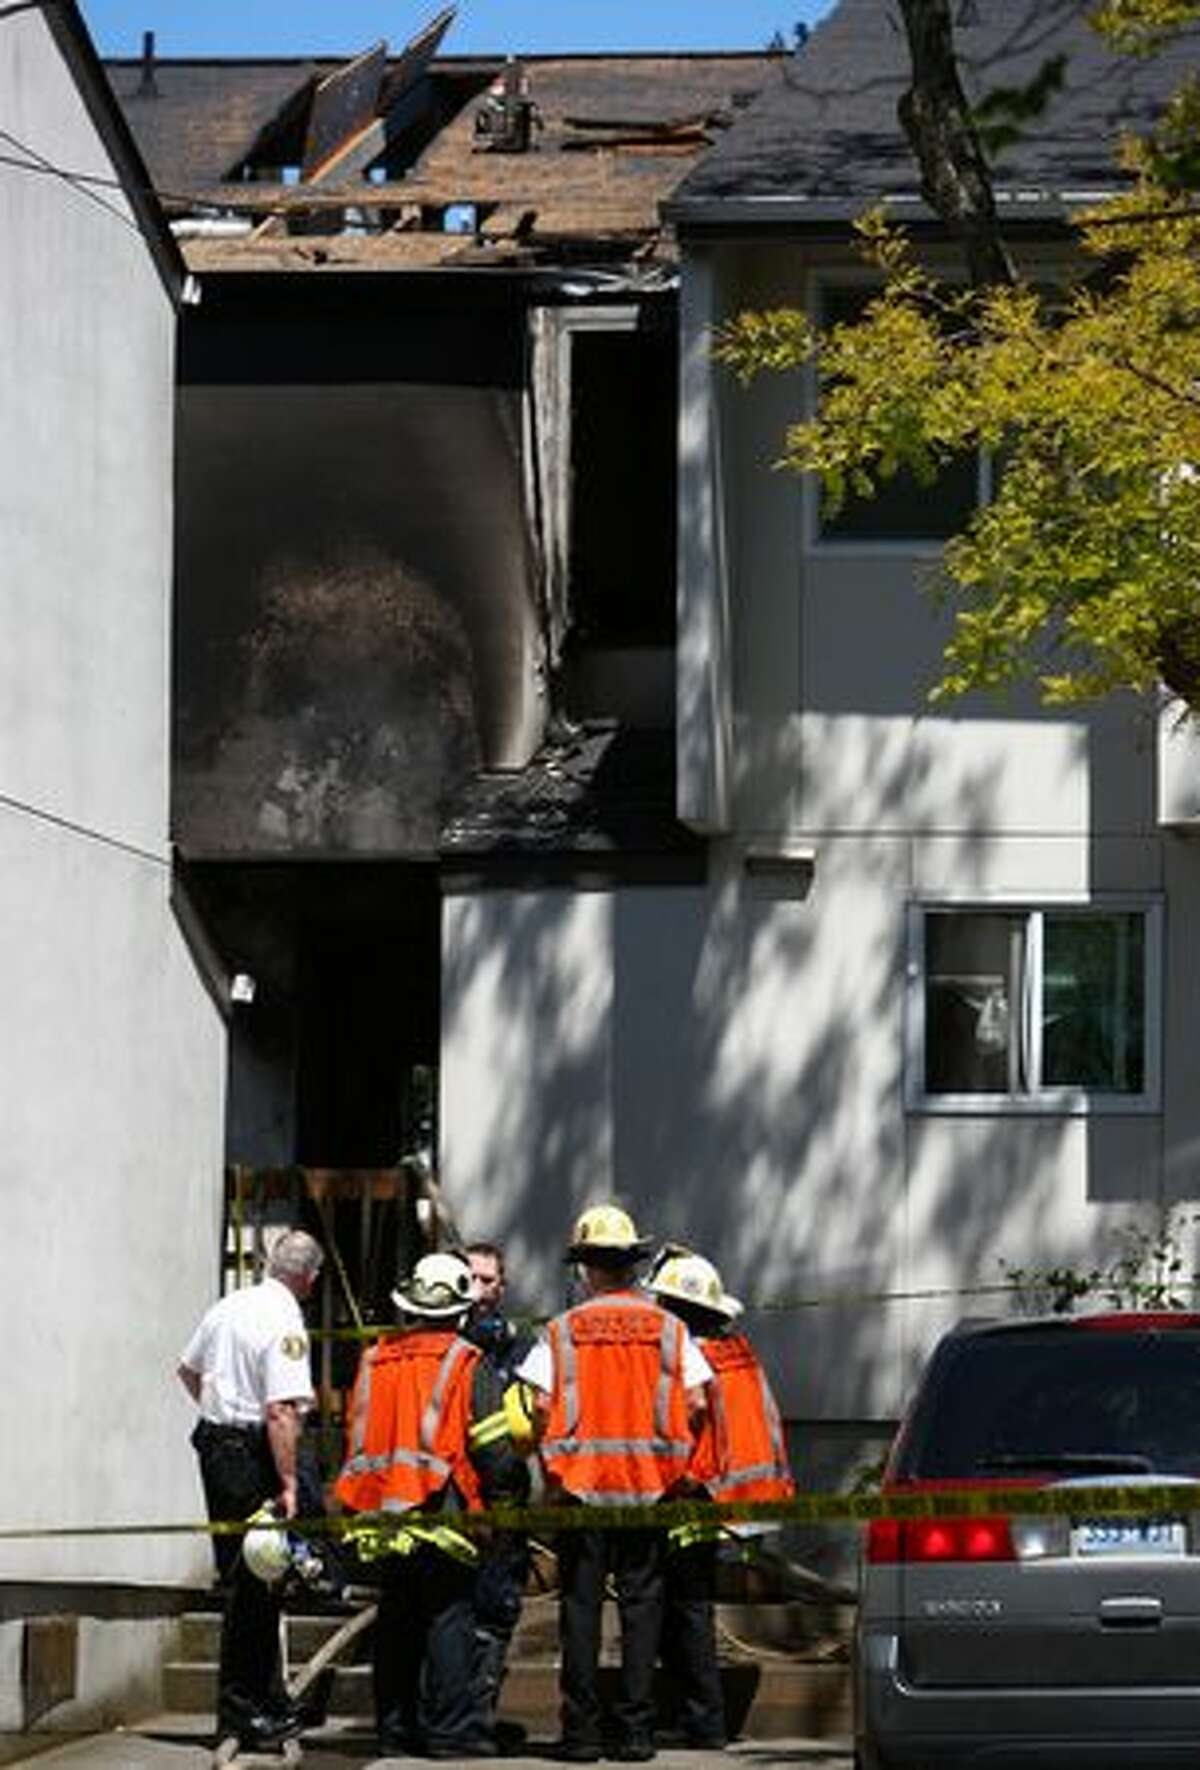 Firefighters and investigators look over the scene after a fire in an apartment building killed five people in Seattle's Fremont neighborhood. Some neighbors complained about the response to the fire after a truck broke down and firefighters experienced technical difficulties extinguishing the fire.